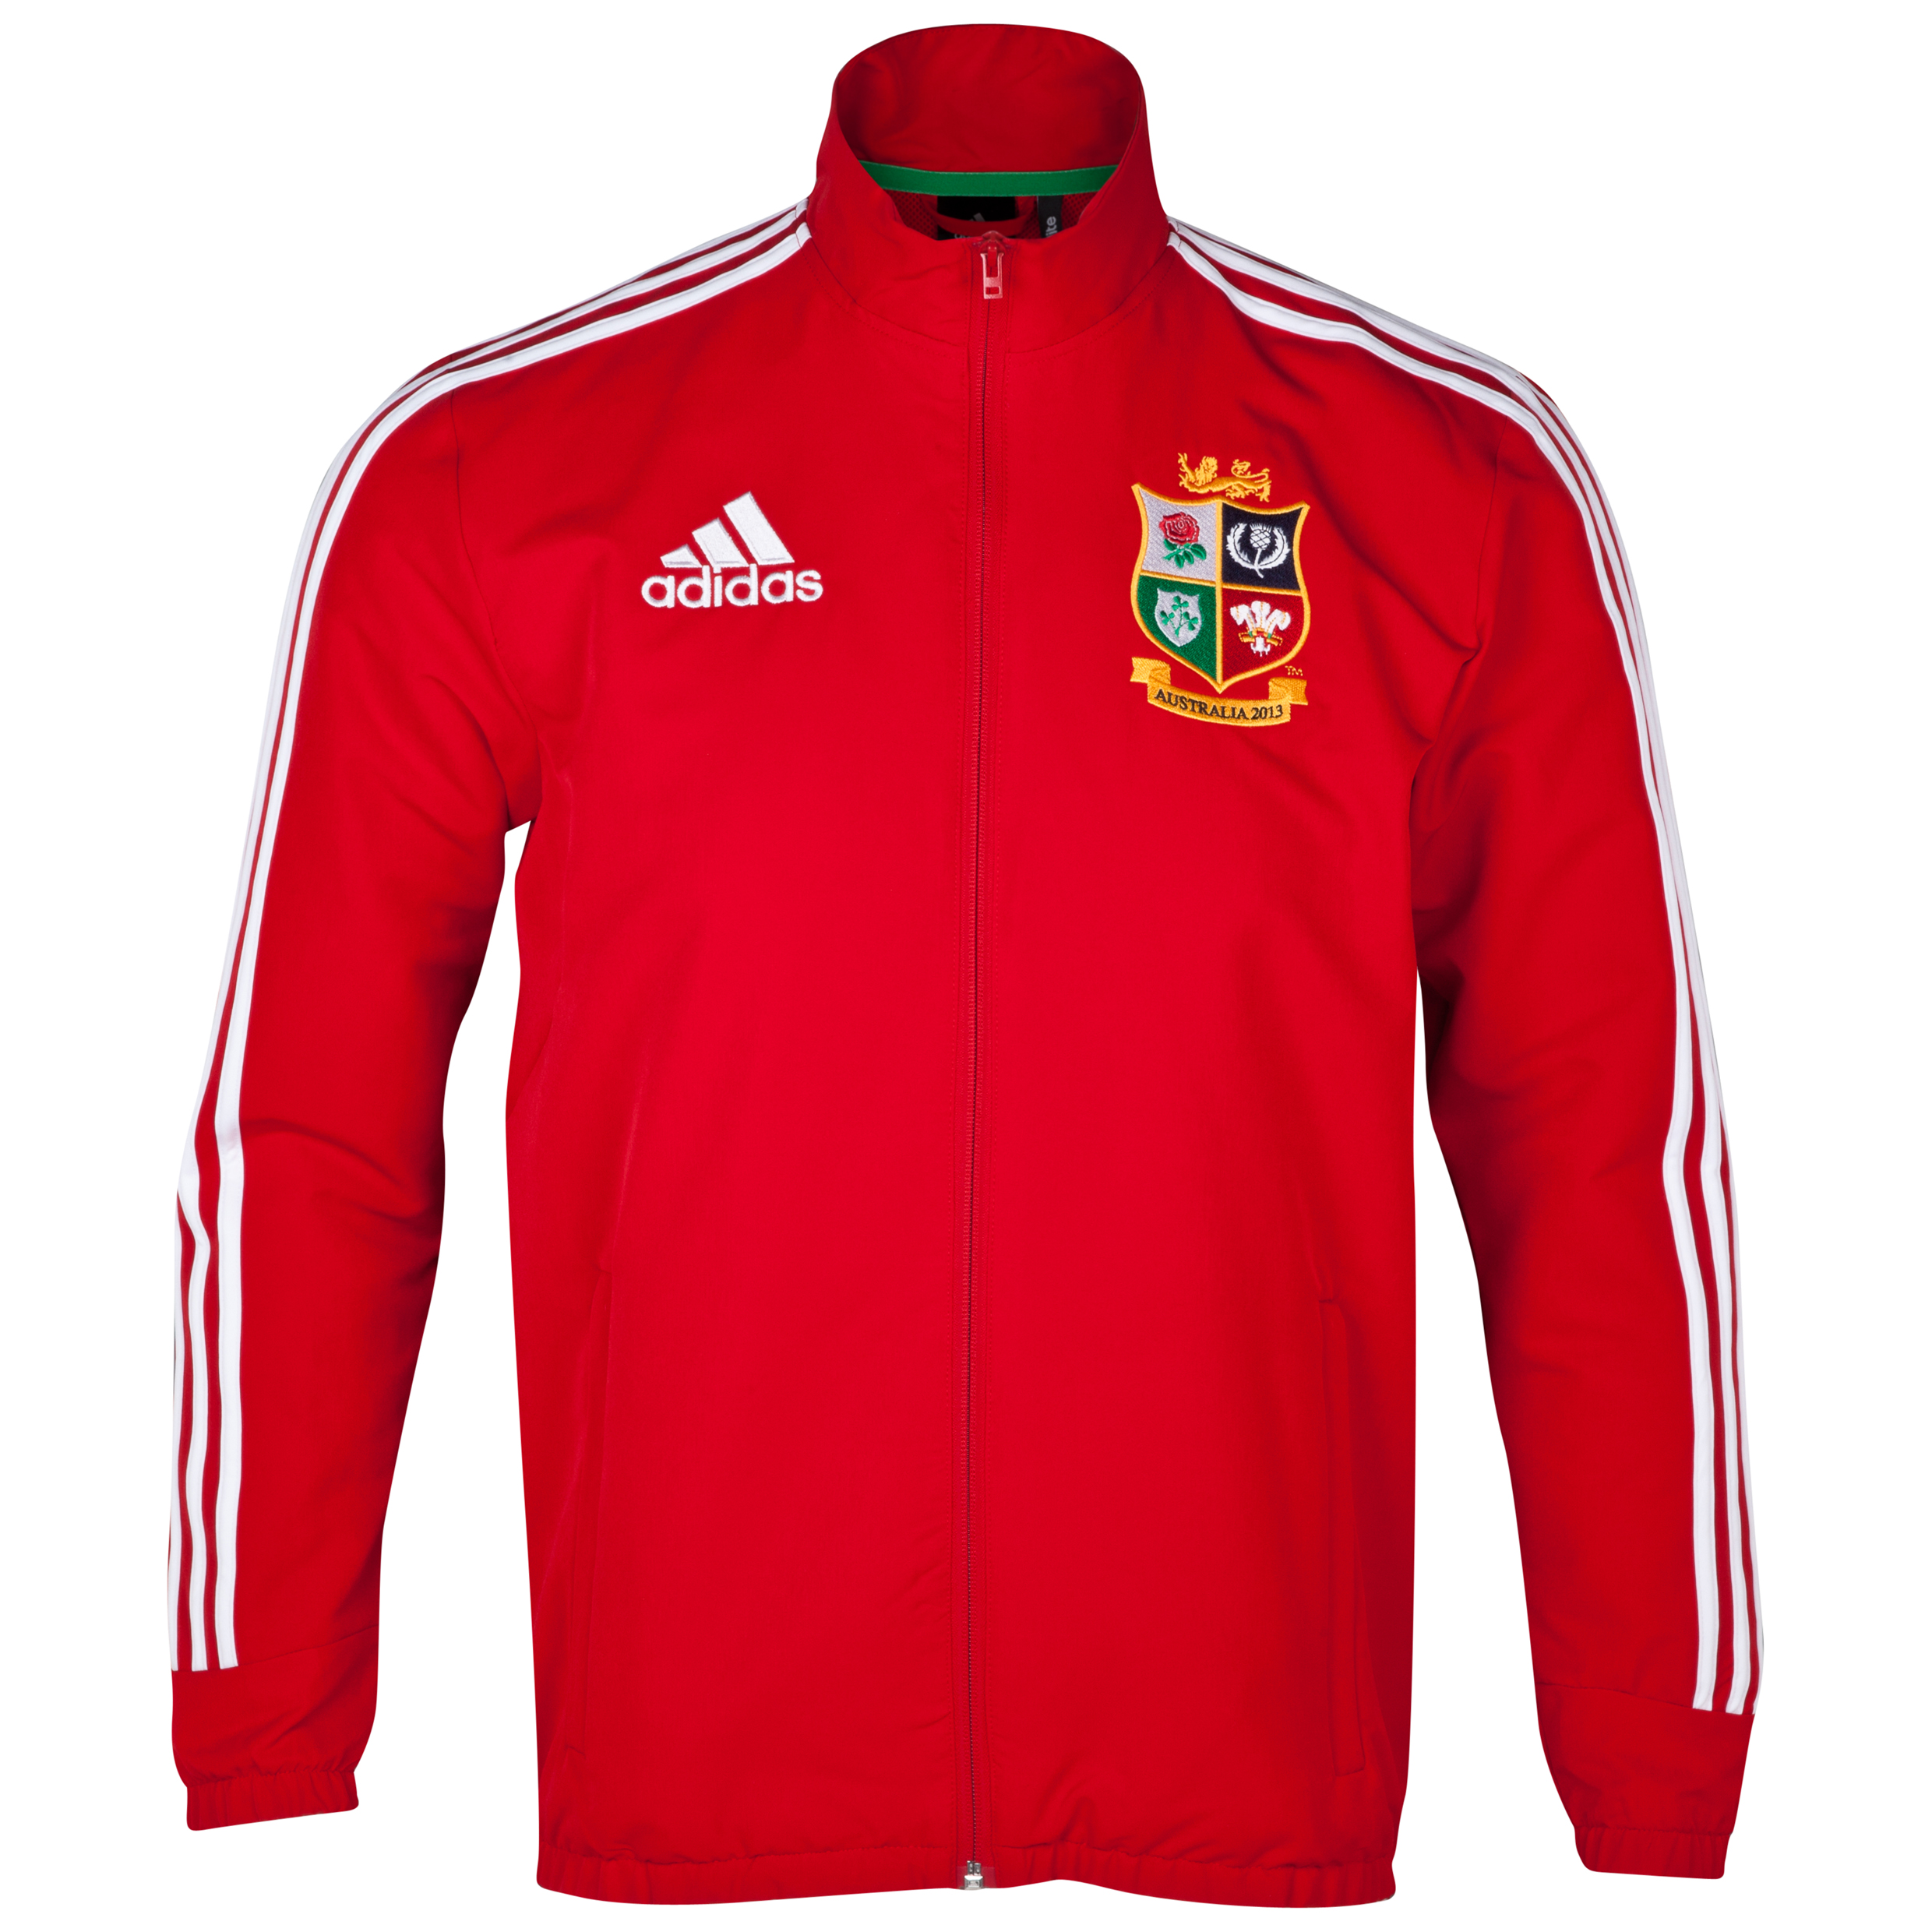 British & Irish Lions Anthem Jacket - University Red/White